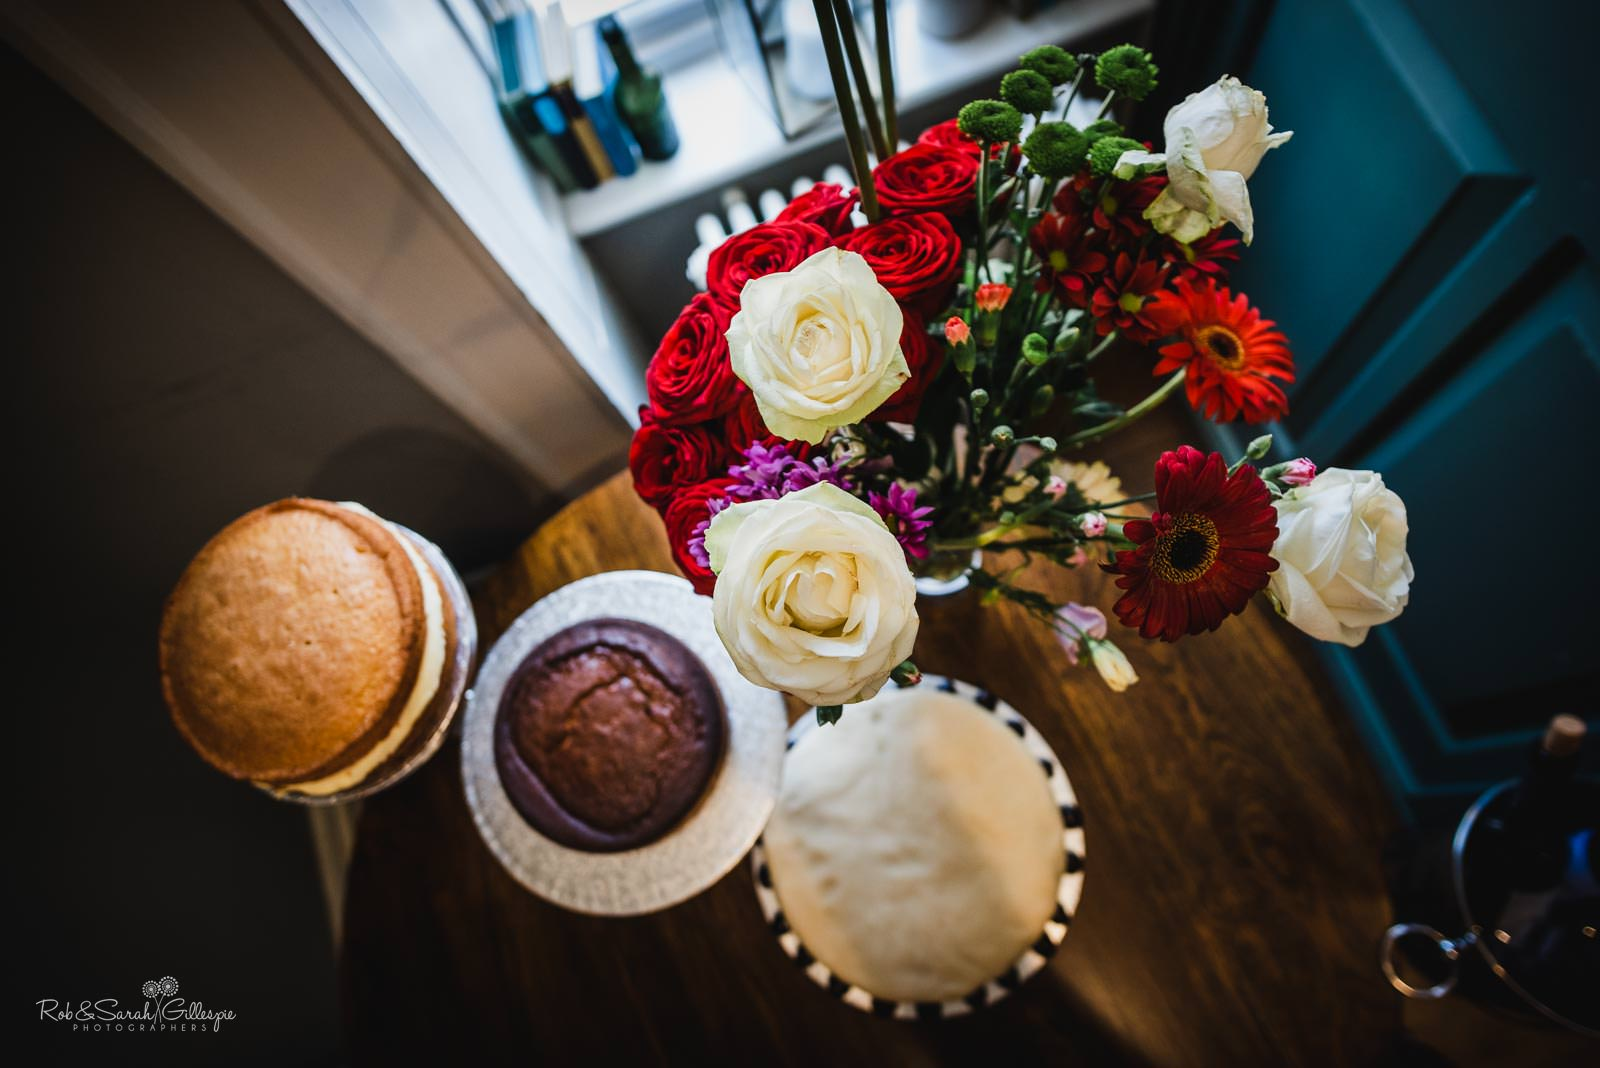 Wedding cake and flowers at The Townhouse in Stratford upon Avon